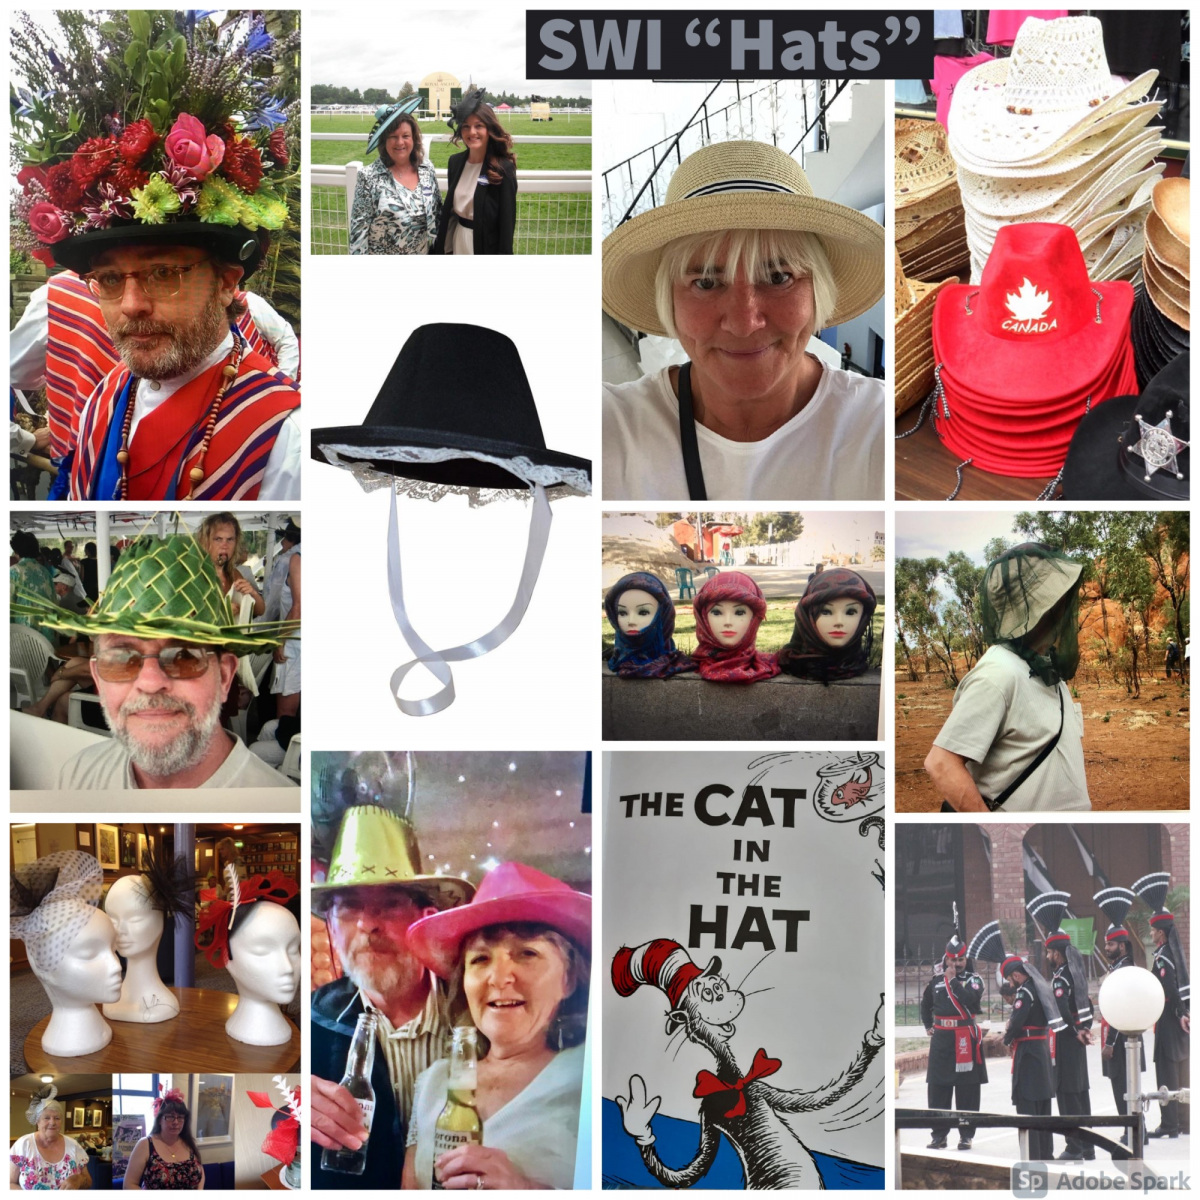 SWI-Hats-part2